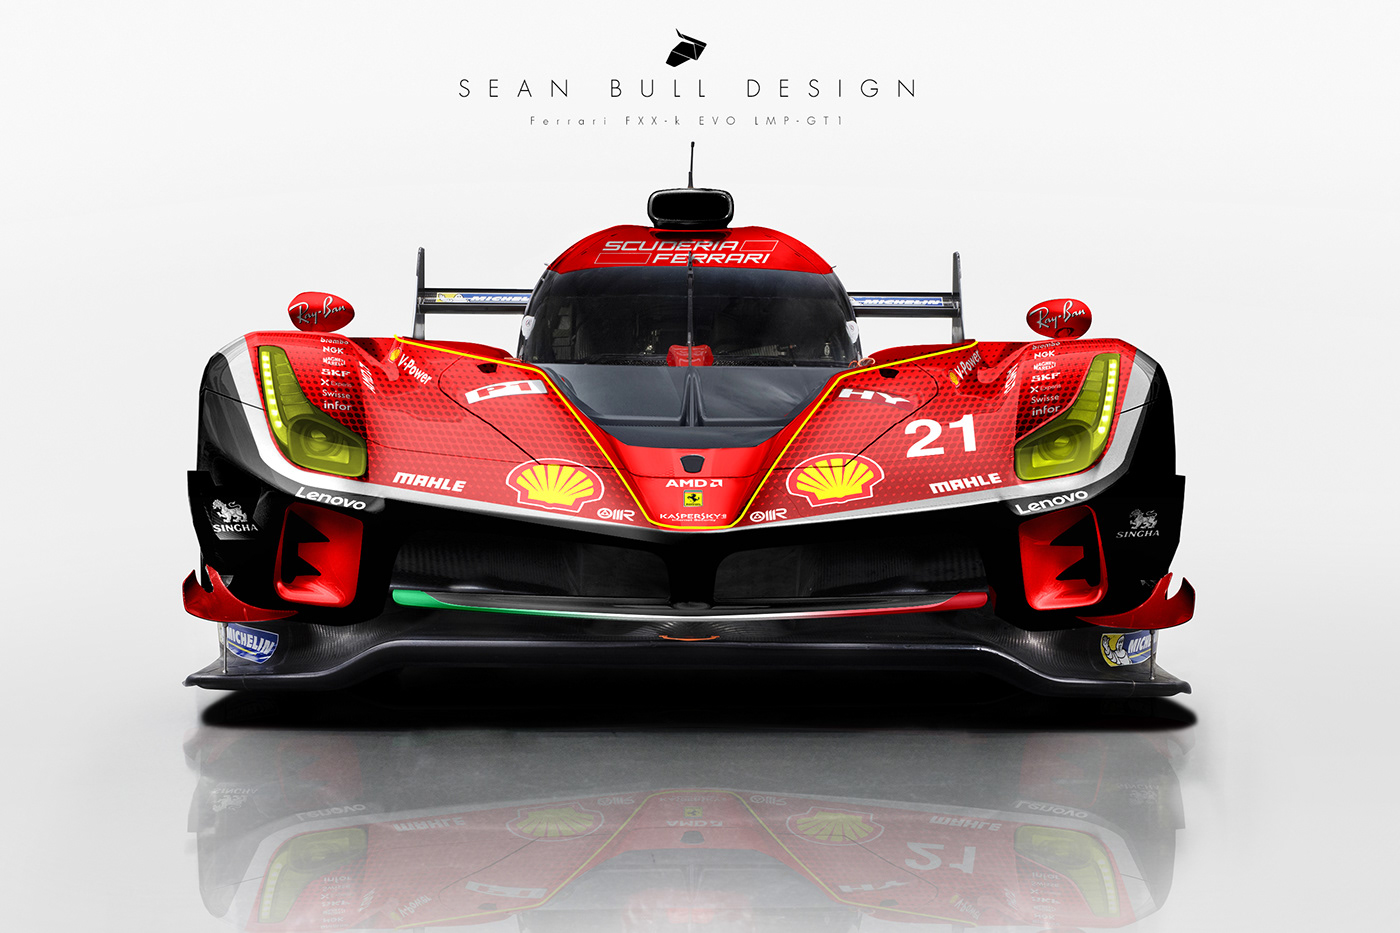 Mercedes Of Warwick >> Le Mans 2020 WEC 'Hypercar' Concepts and Liveries on Behance